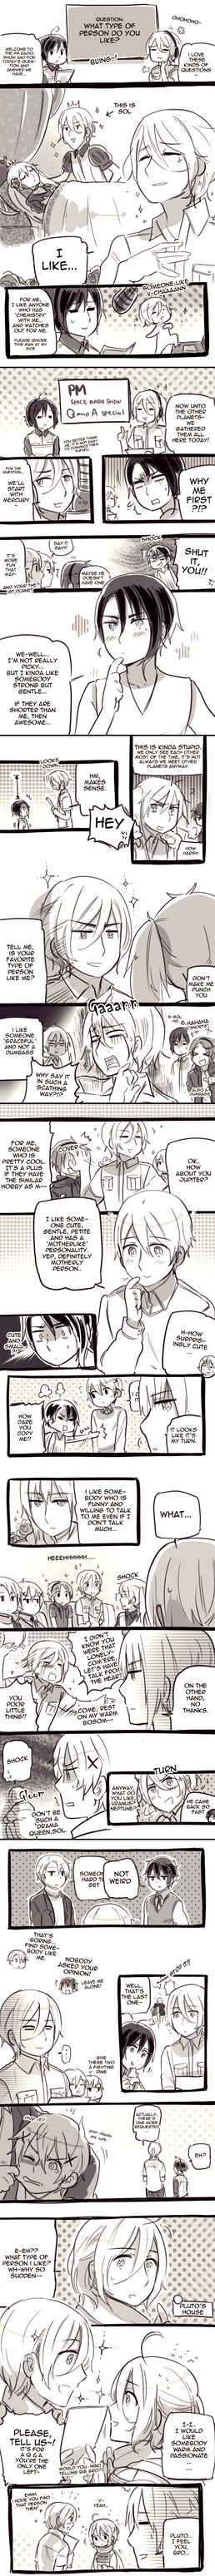 Who do you like? by Cioccolatodorima